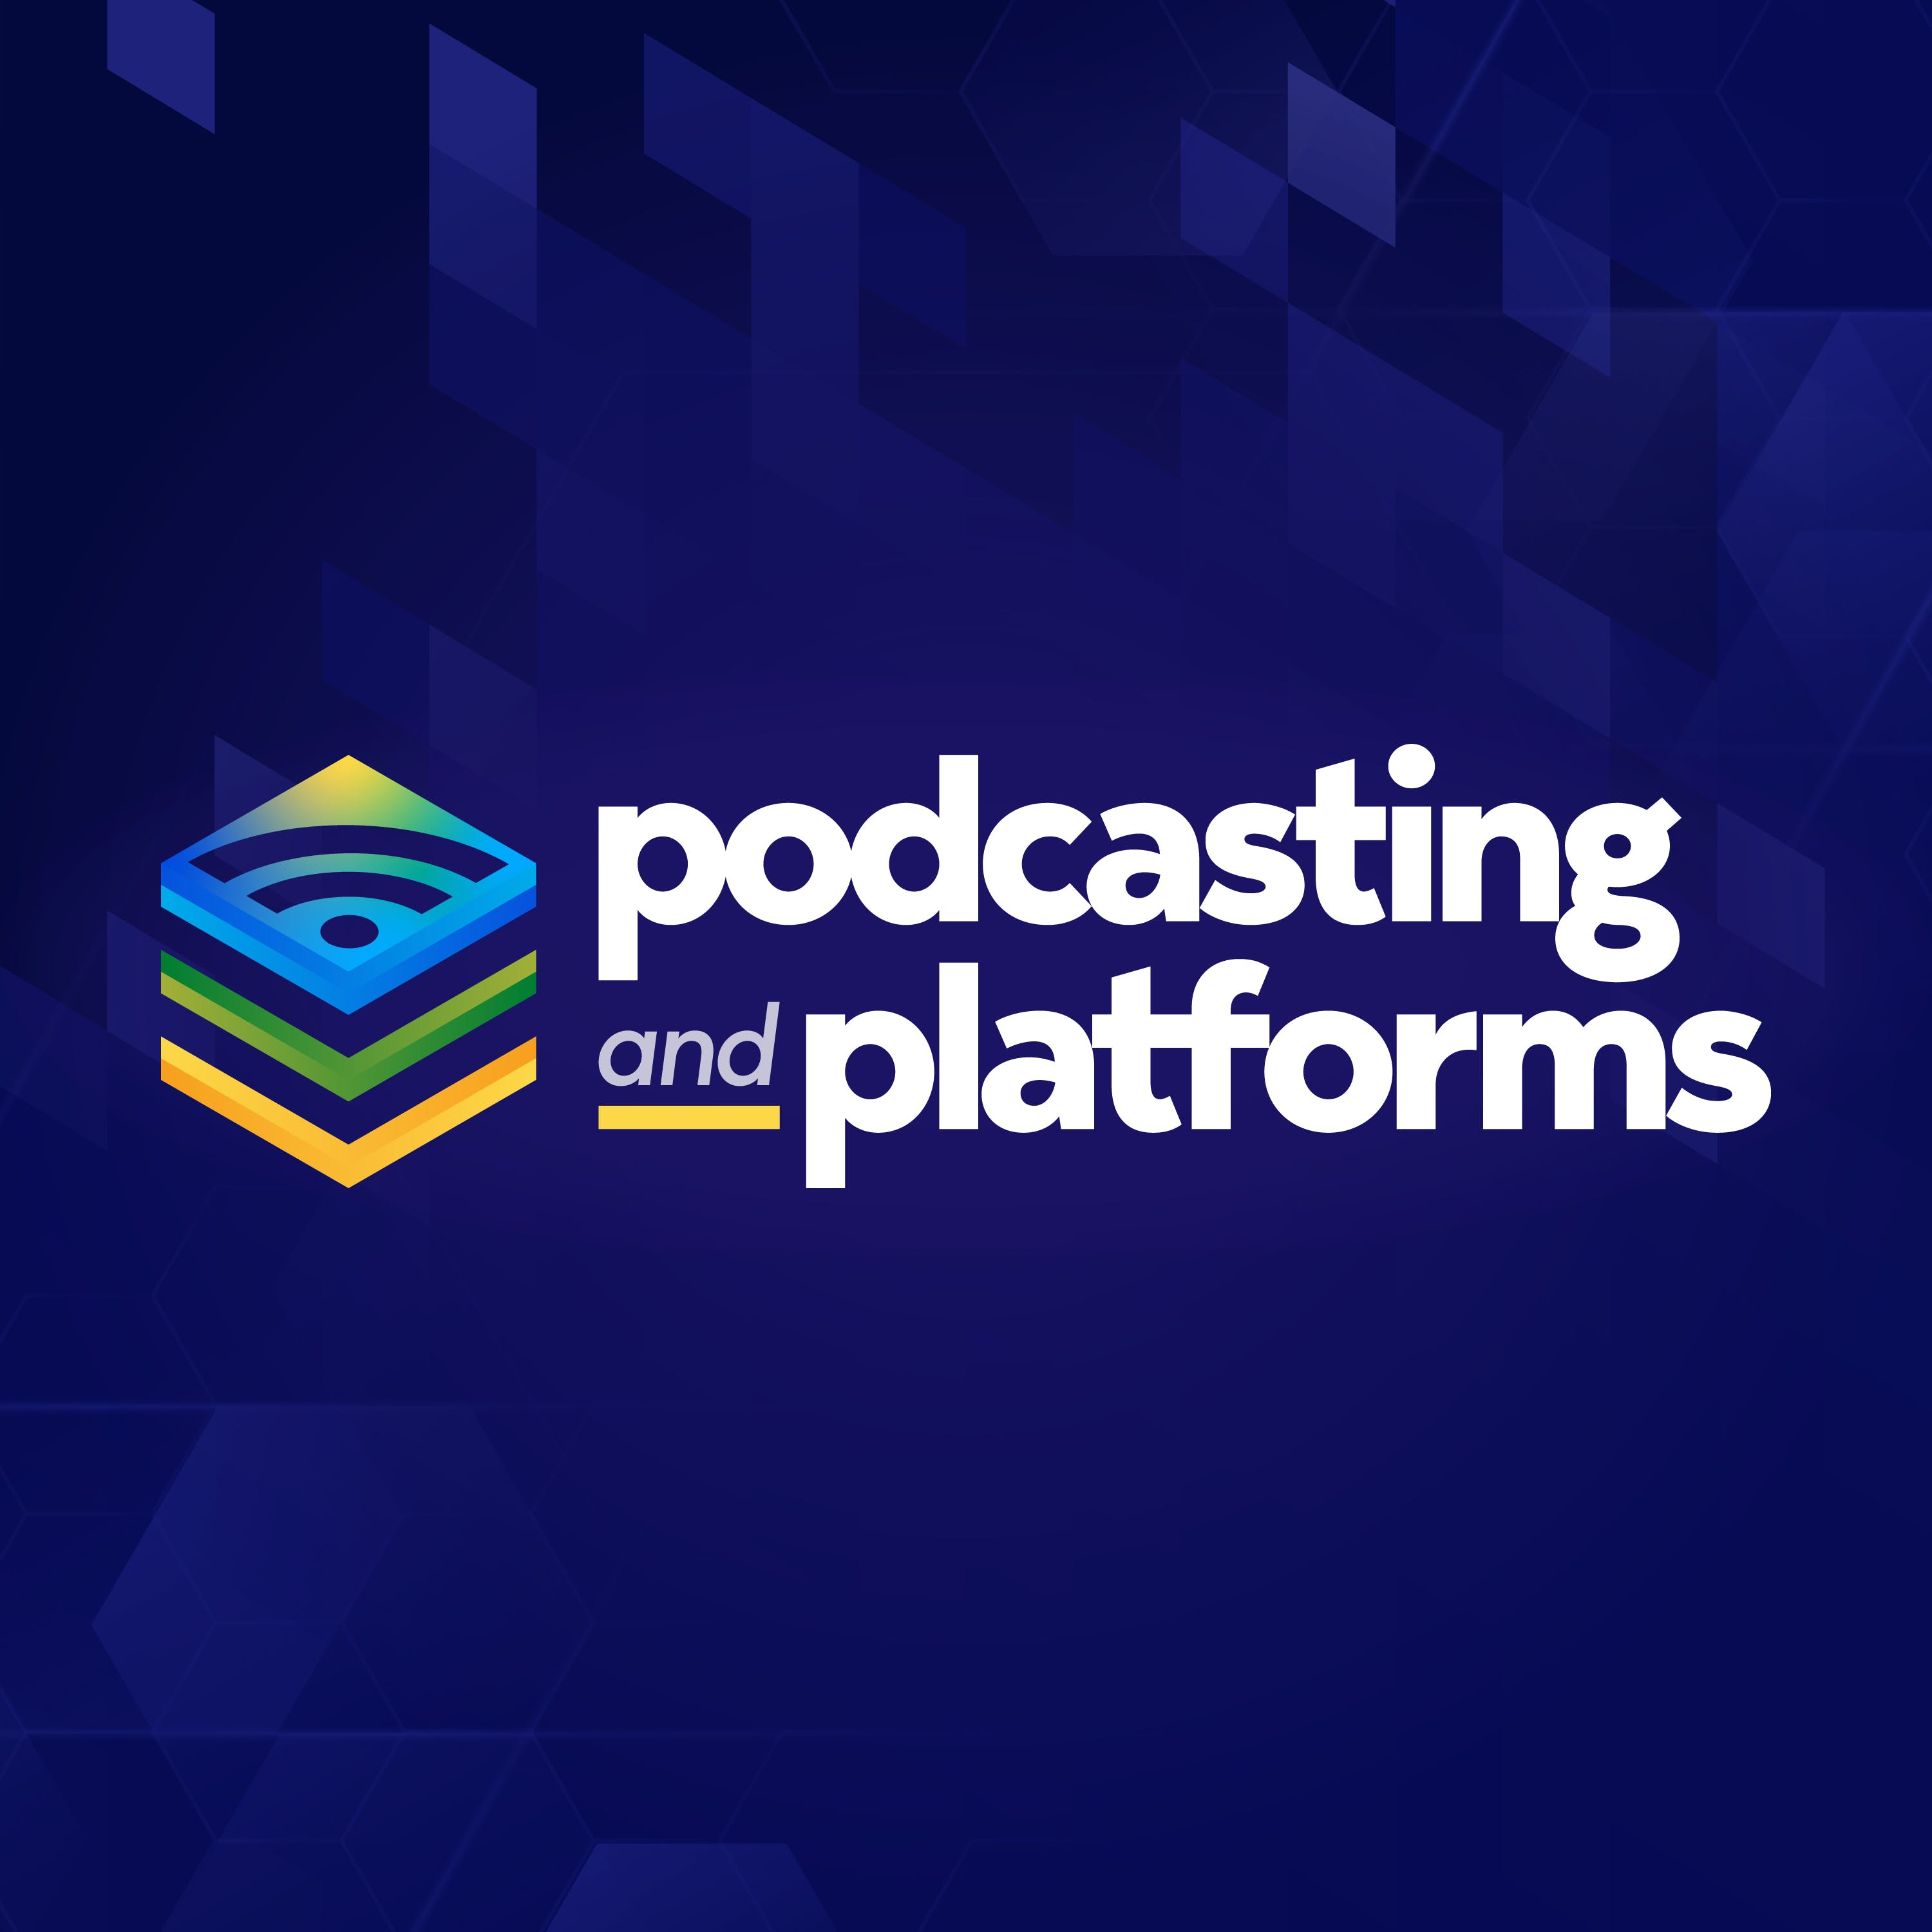 PP: What is the Point of Your Podcast?